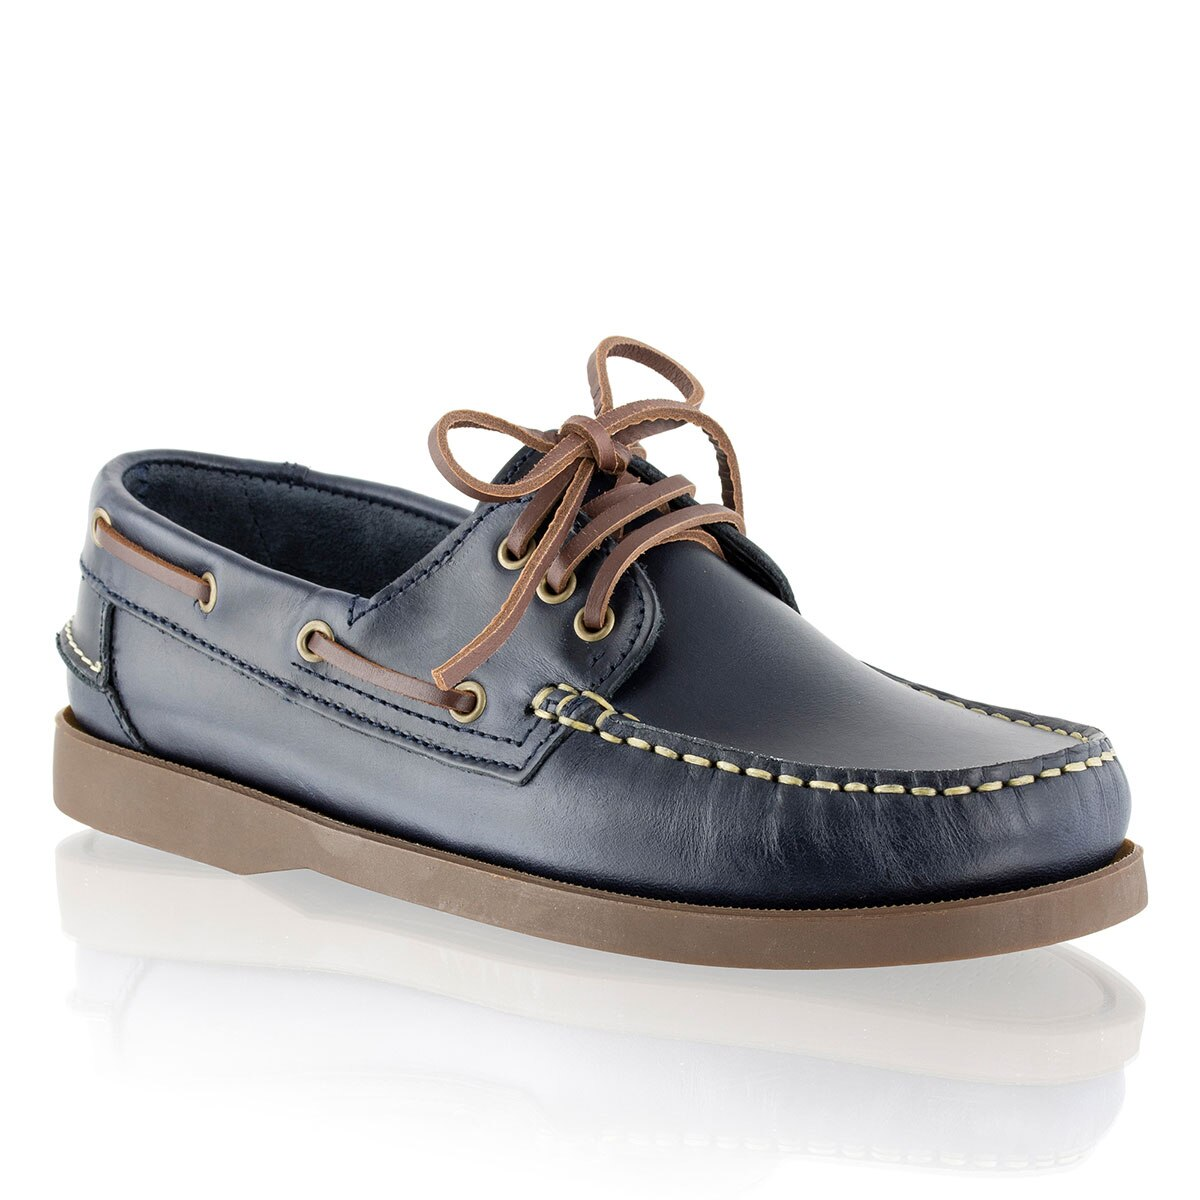 Russell and Bromley KEEL L Lace-Up Boat Shoe